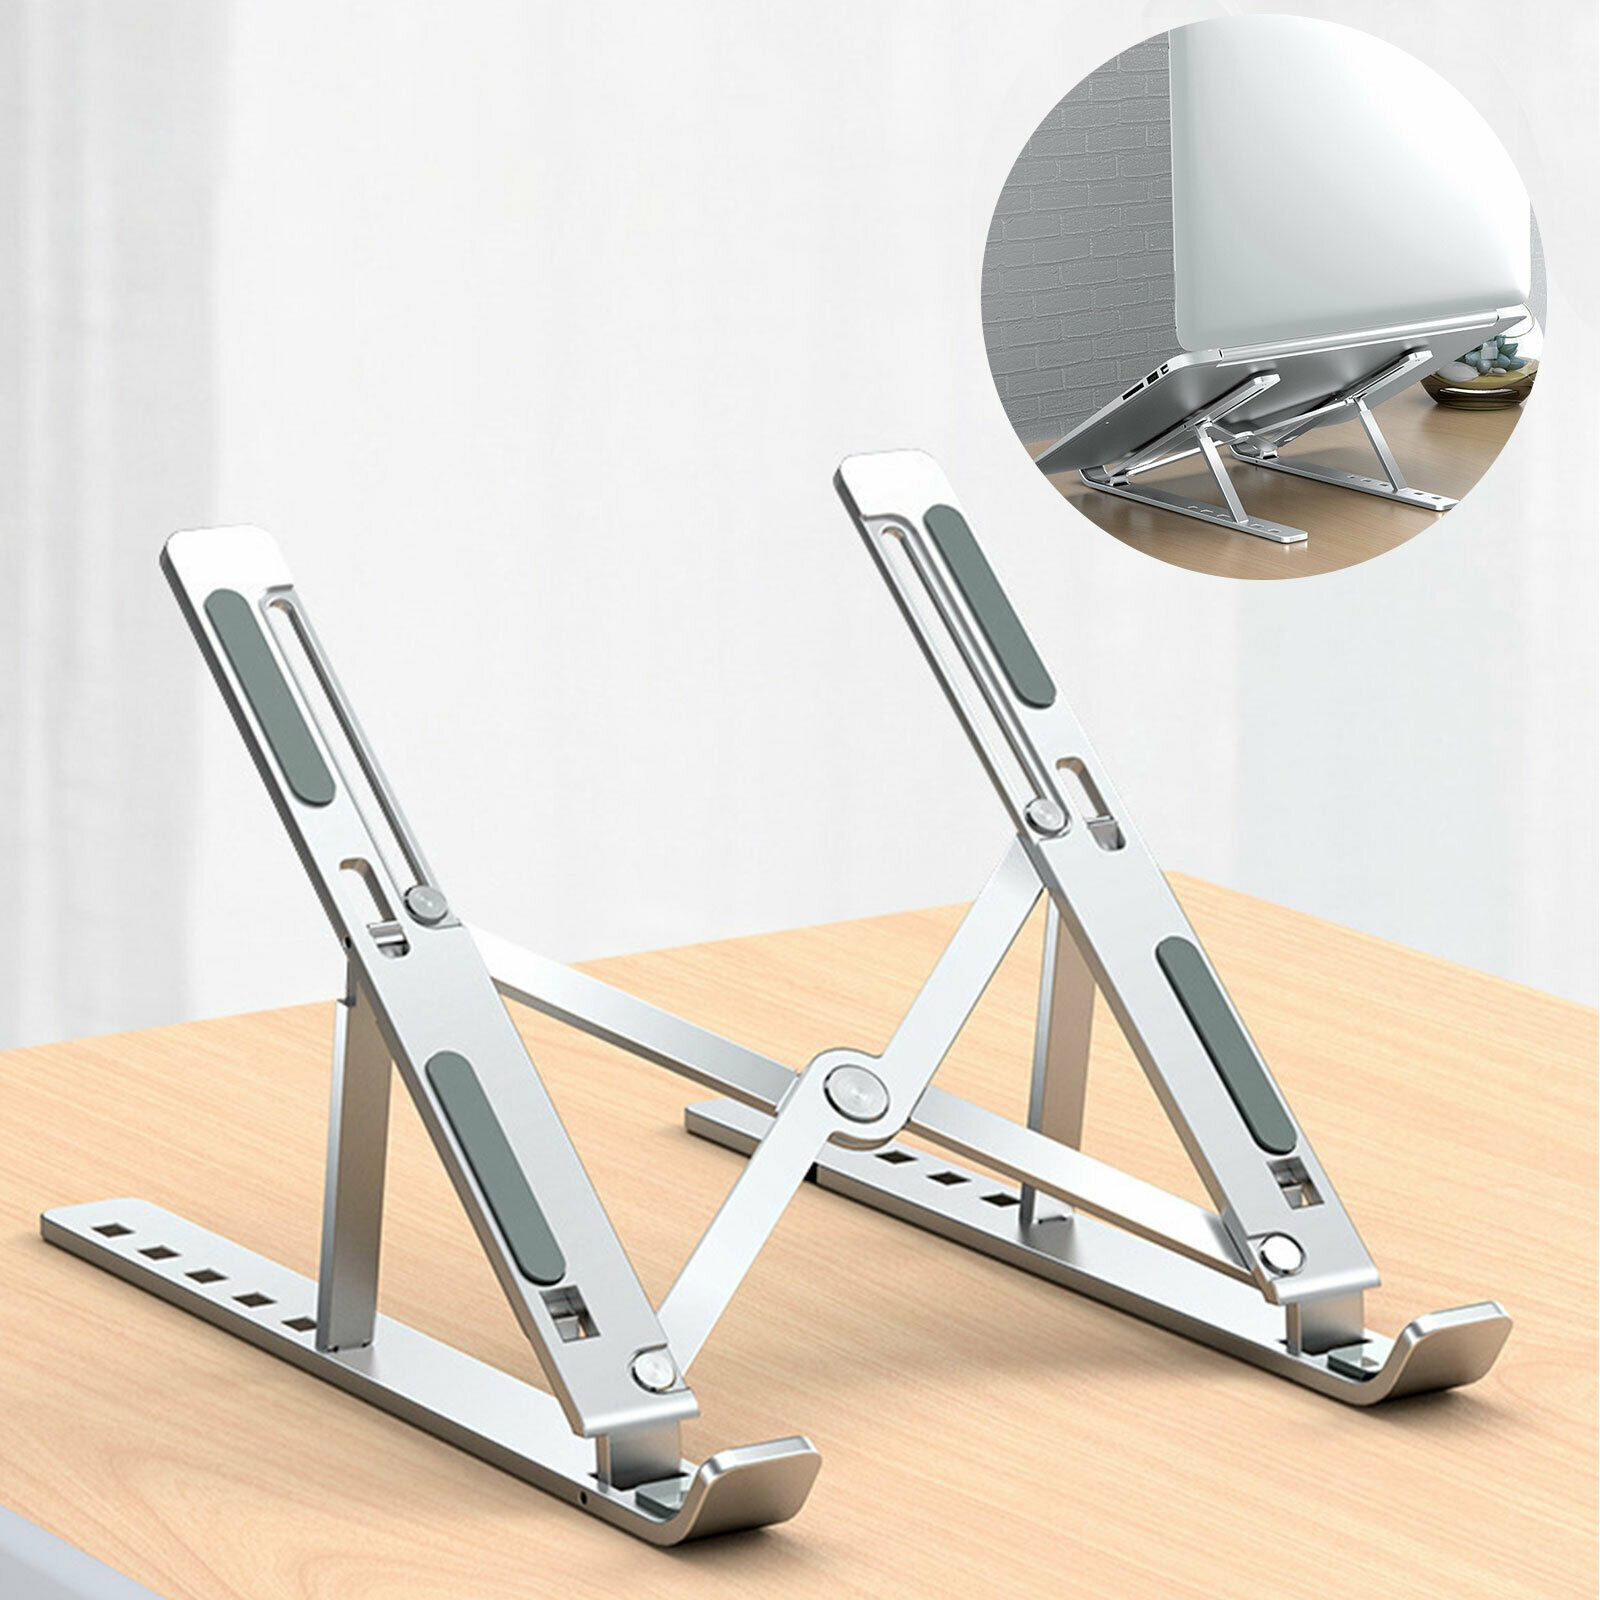 Ergonomic Portable Folding Aluminum Adjustable Notebook, Tablet, Laptop Stand